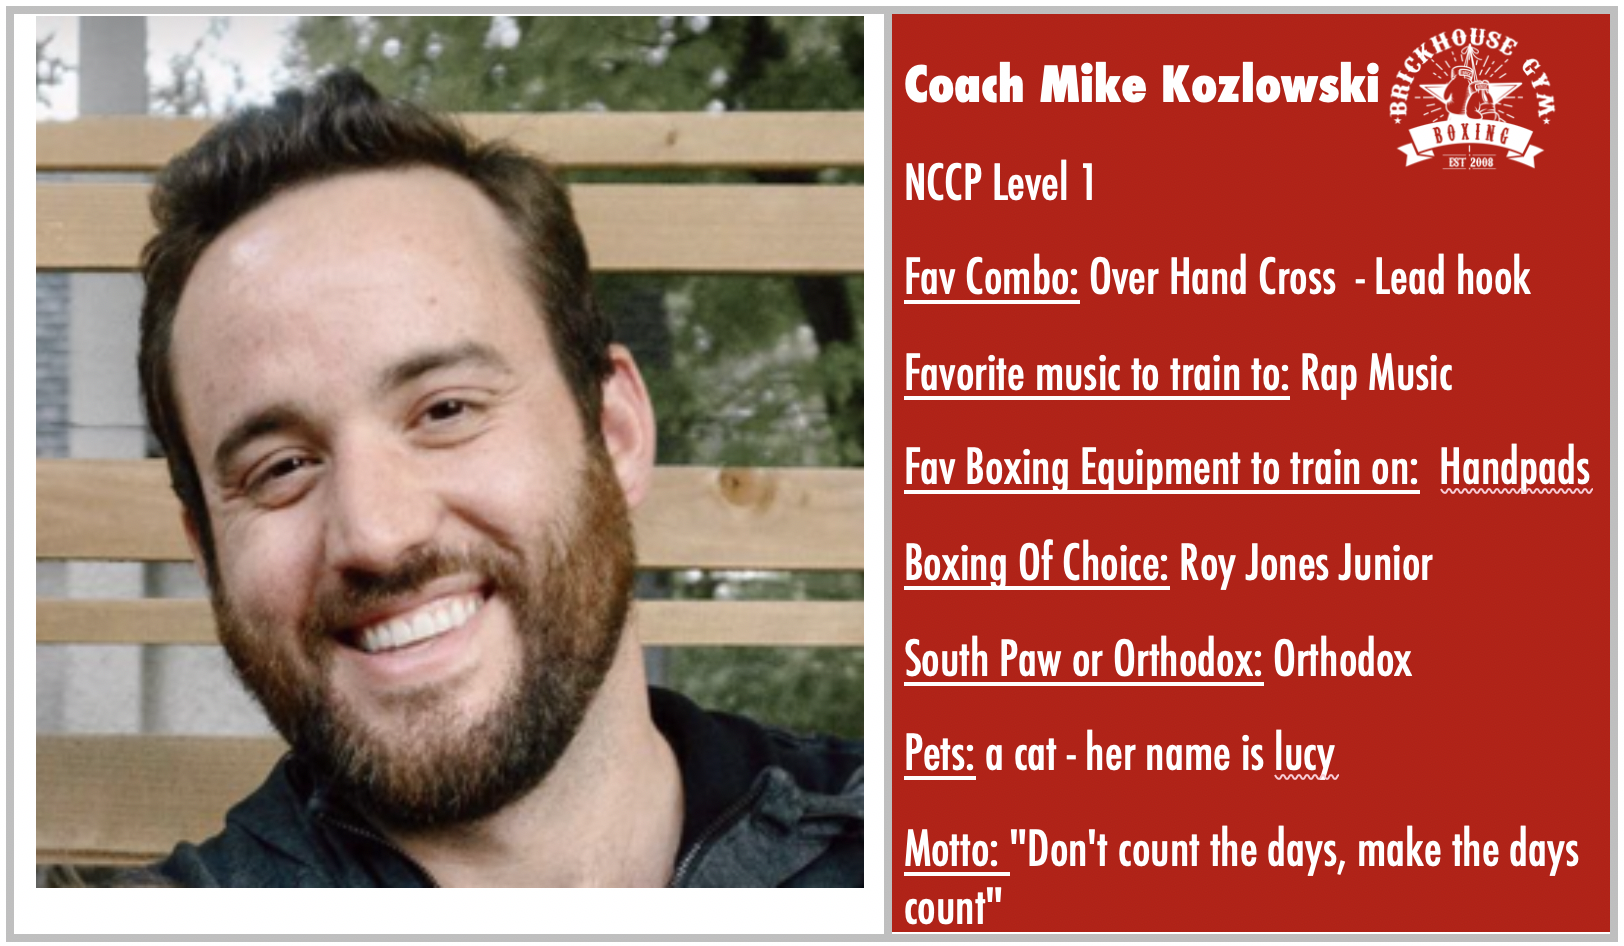 Coach Mike Kozlowski: Featured Coach of WEEK 5 - October 7 - 13, 2019